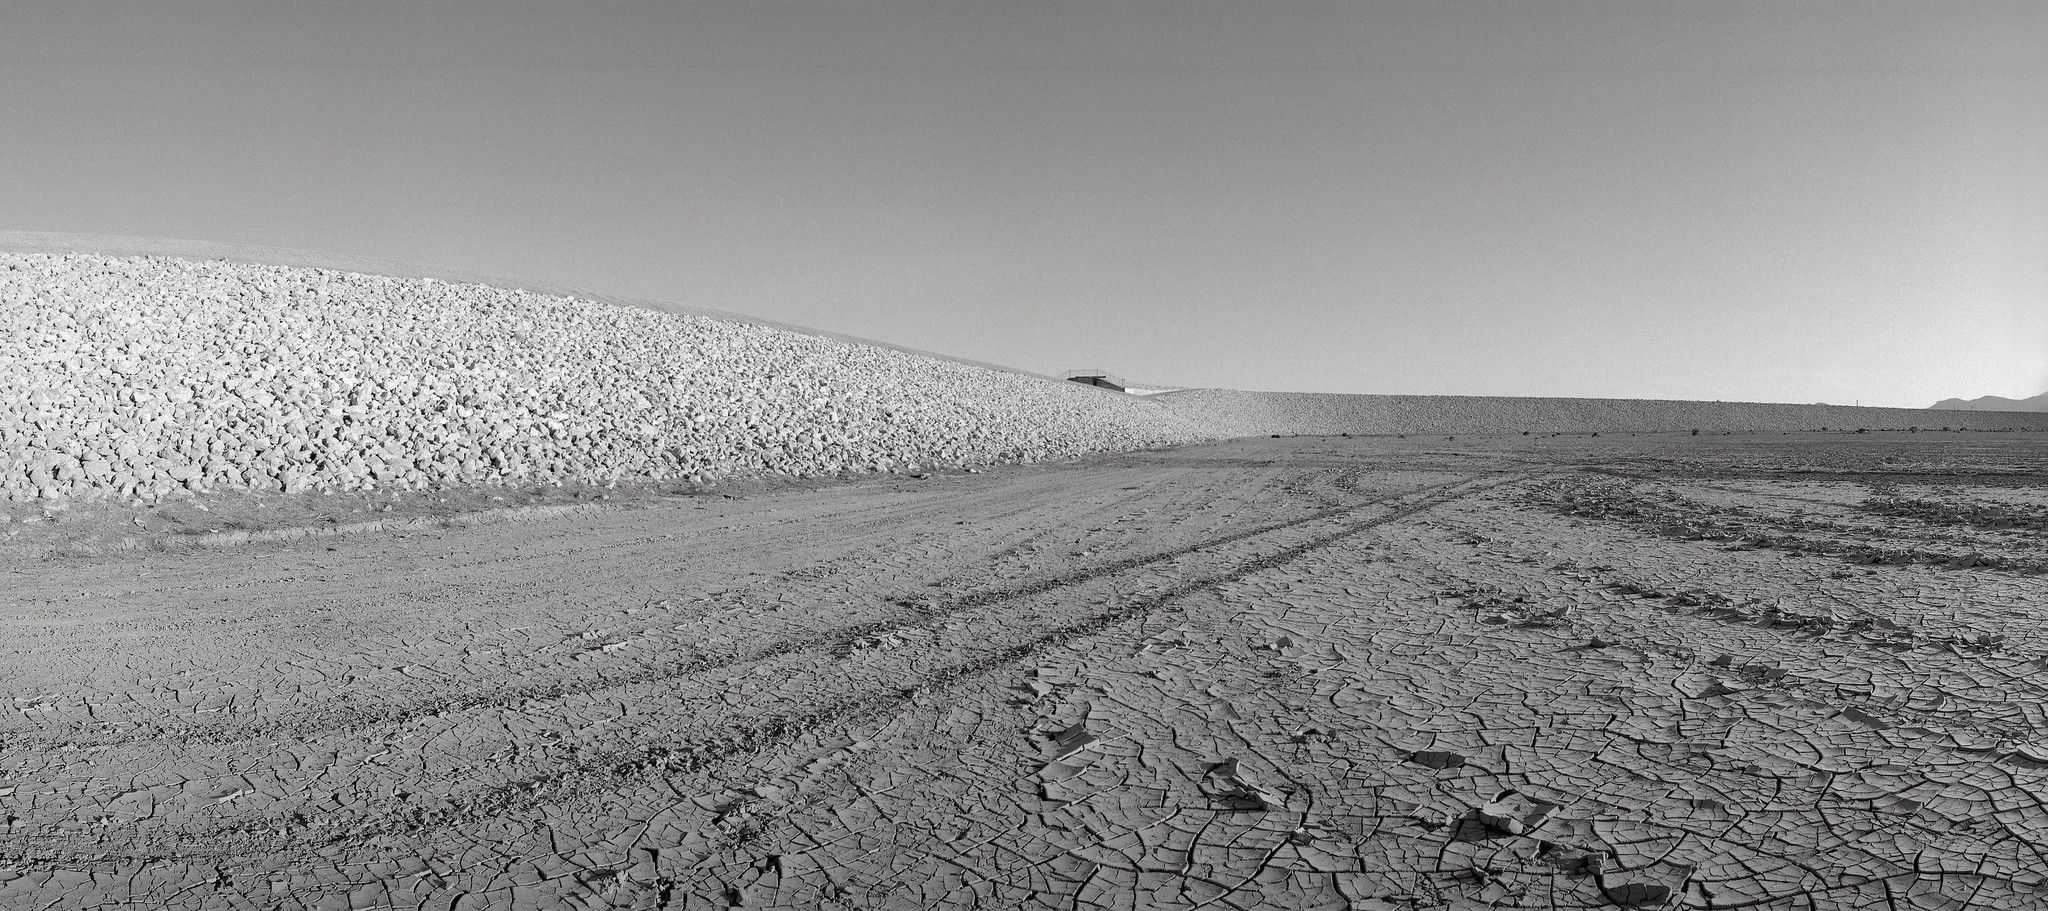 Erosion Control Structure, near Las Vegas, Nevada | by austin granger